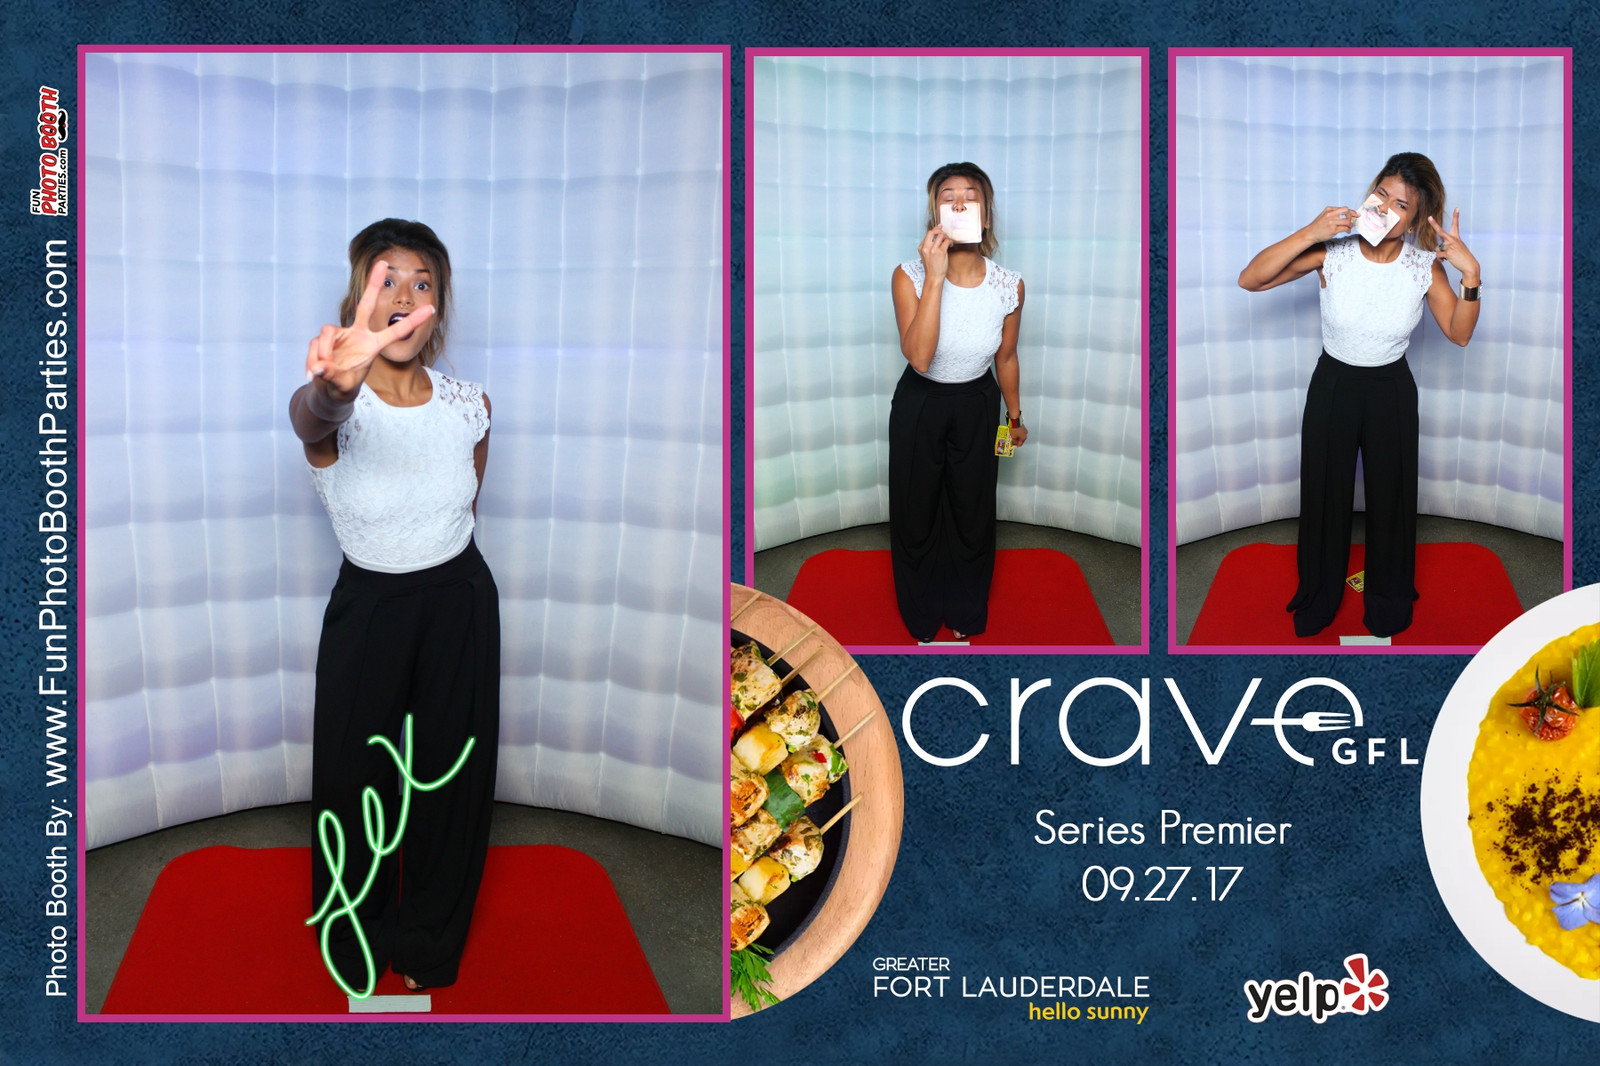 Fun Photo Booth Parties In South Florida